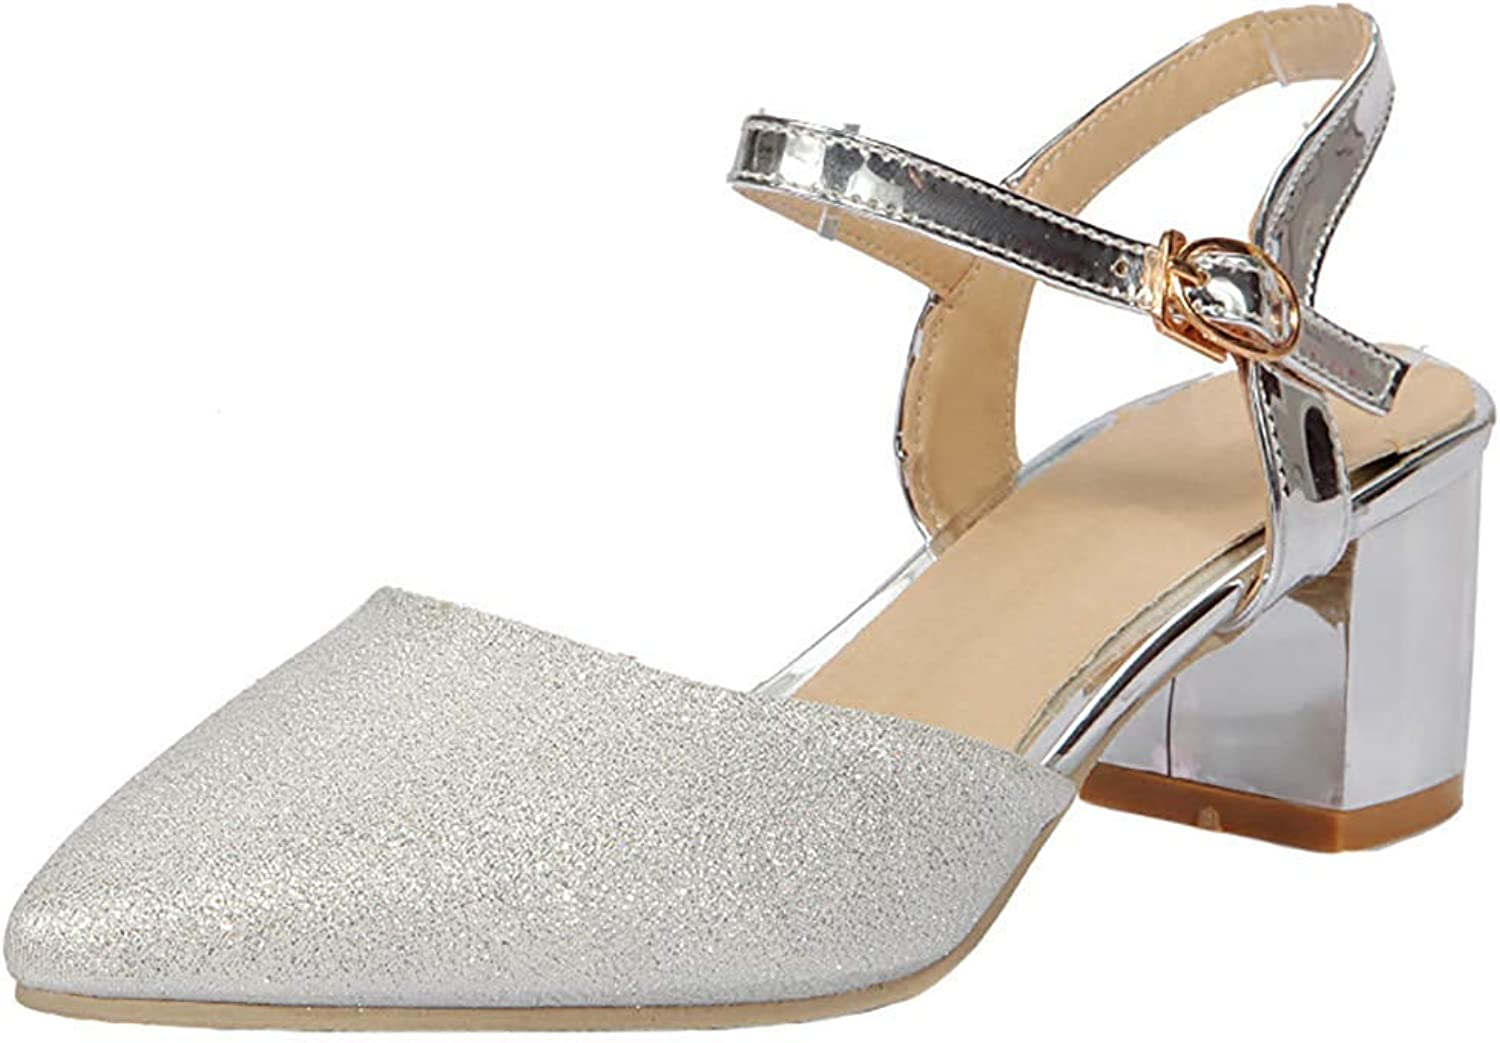 Gcanwea Women's Elegant Sequins Glitter Buckle Ankle Strap Pointed Toe Mid Chunky Heel Pumps shoes Fashion Dress Rubber Sole Classic Simple Girls Breathable Silver 7 M US Pumps shoes